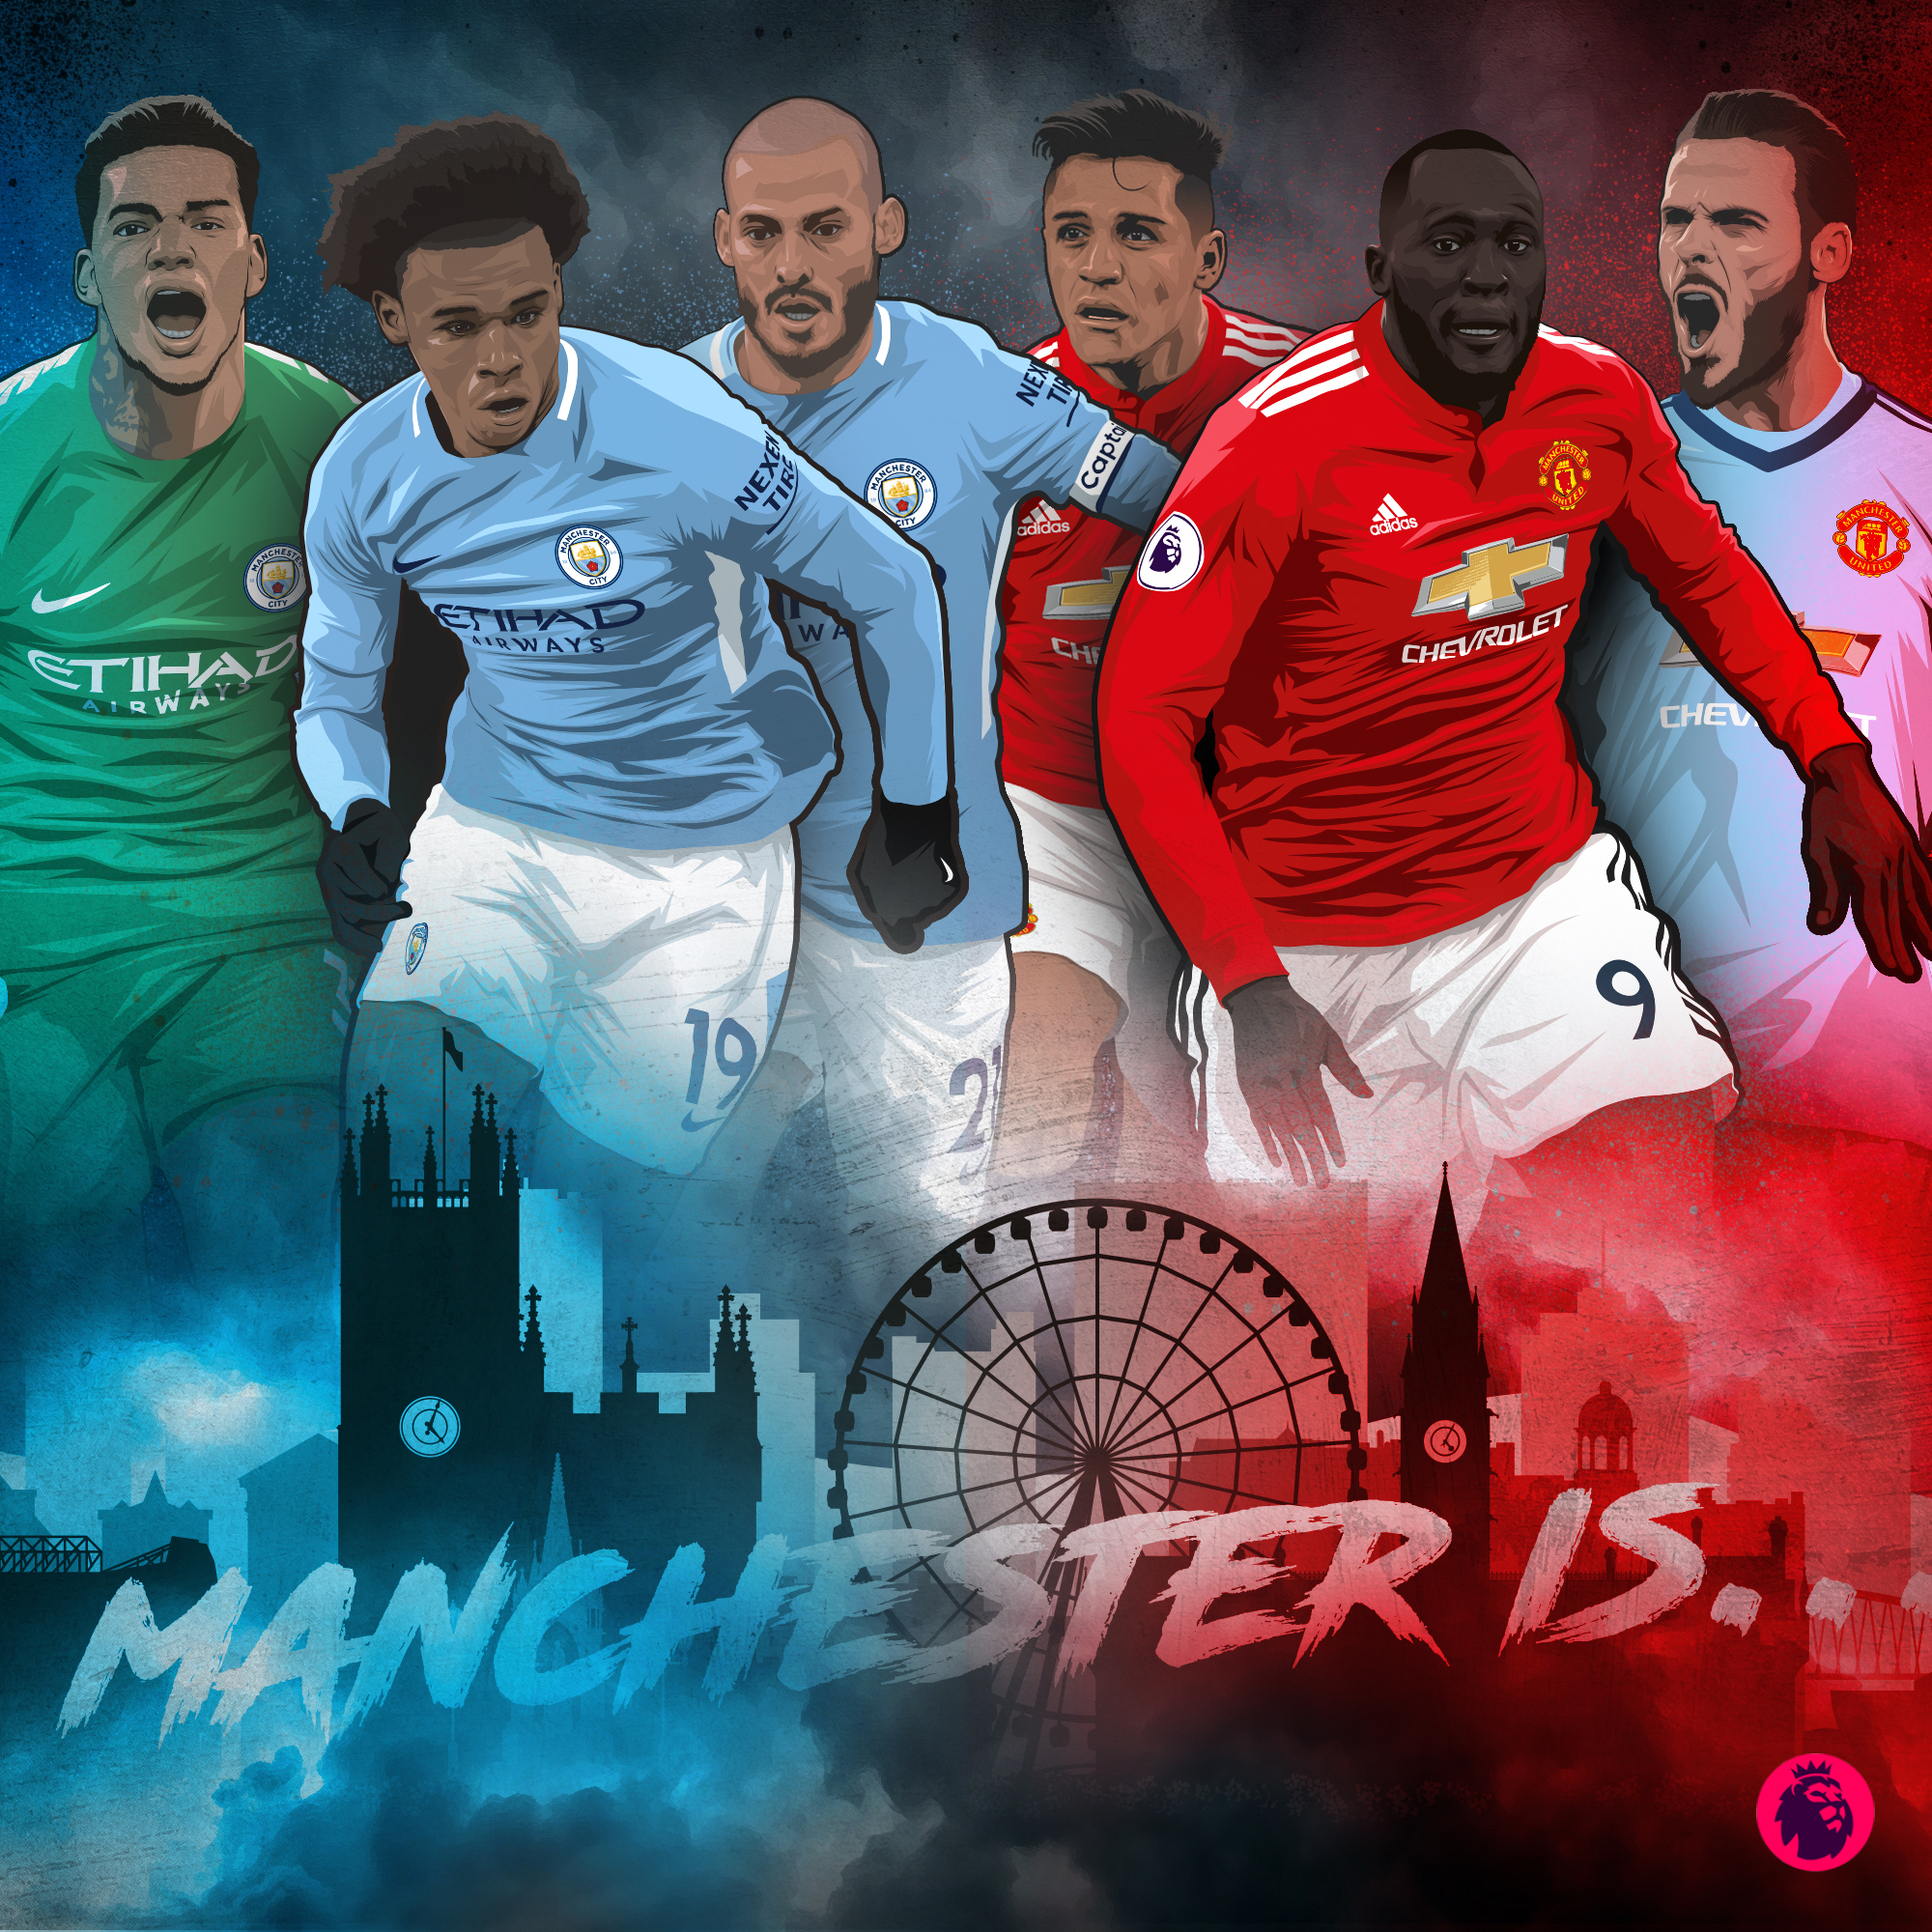 PL - Manchester Derby Idea